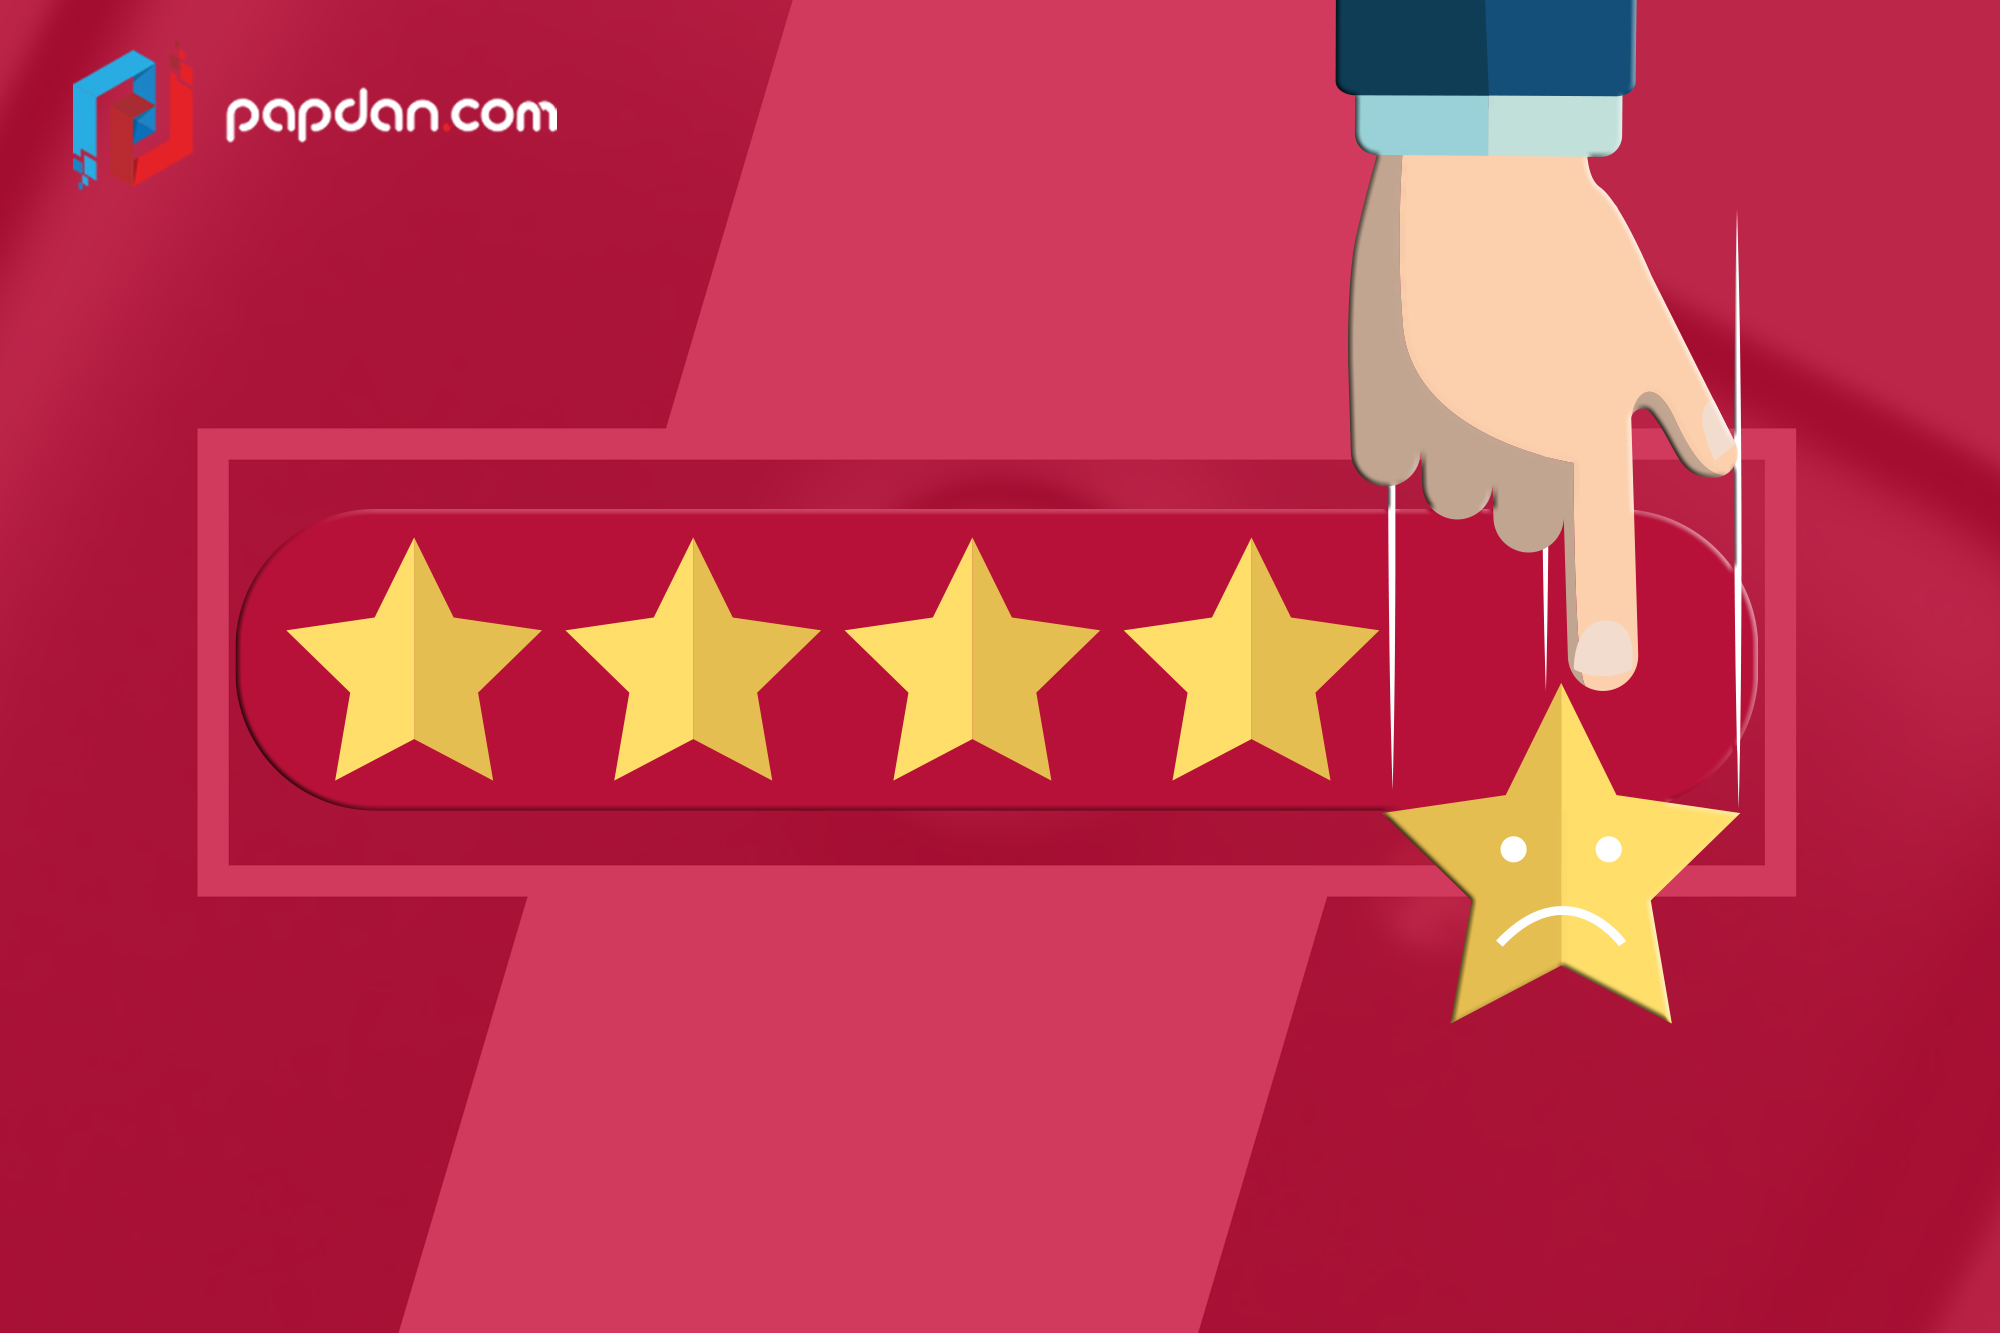 How polite negative reviews can make positive impact on people - The Most Effective Ways To Respond To Negative Reviews